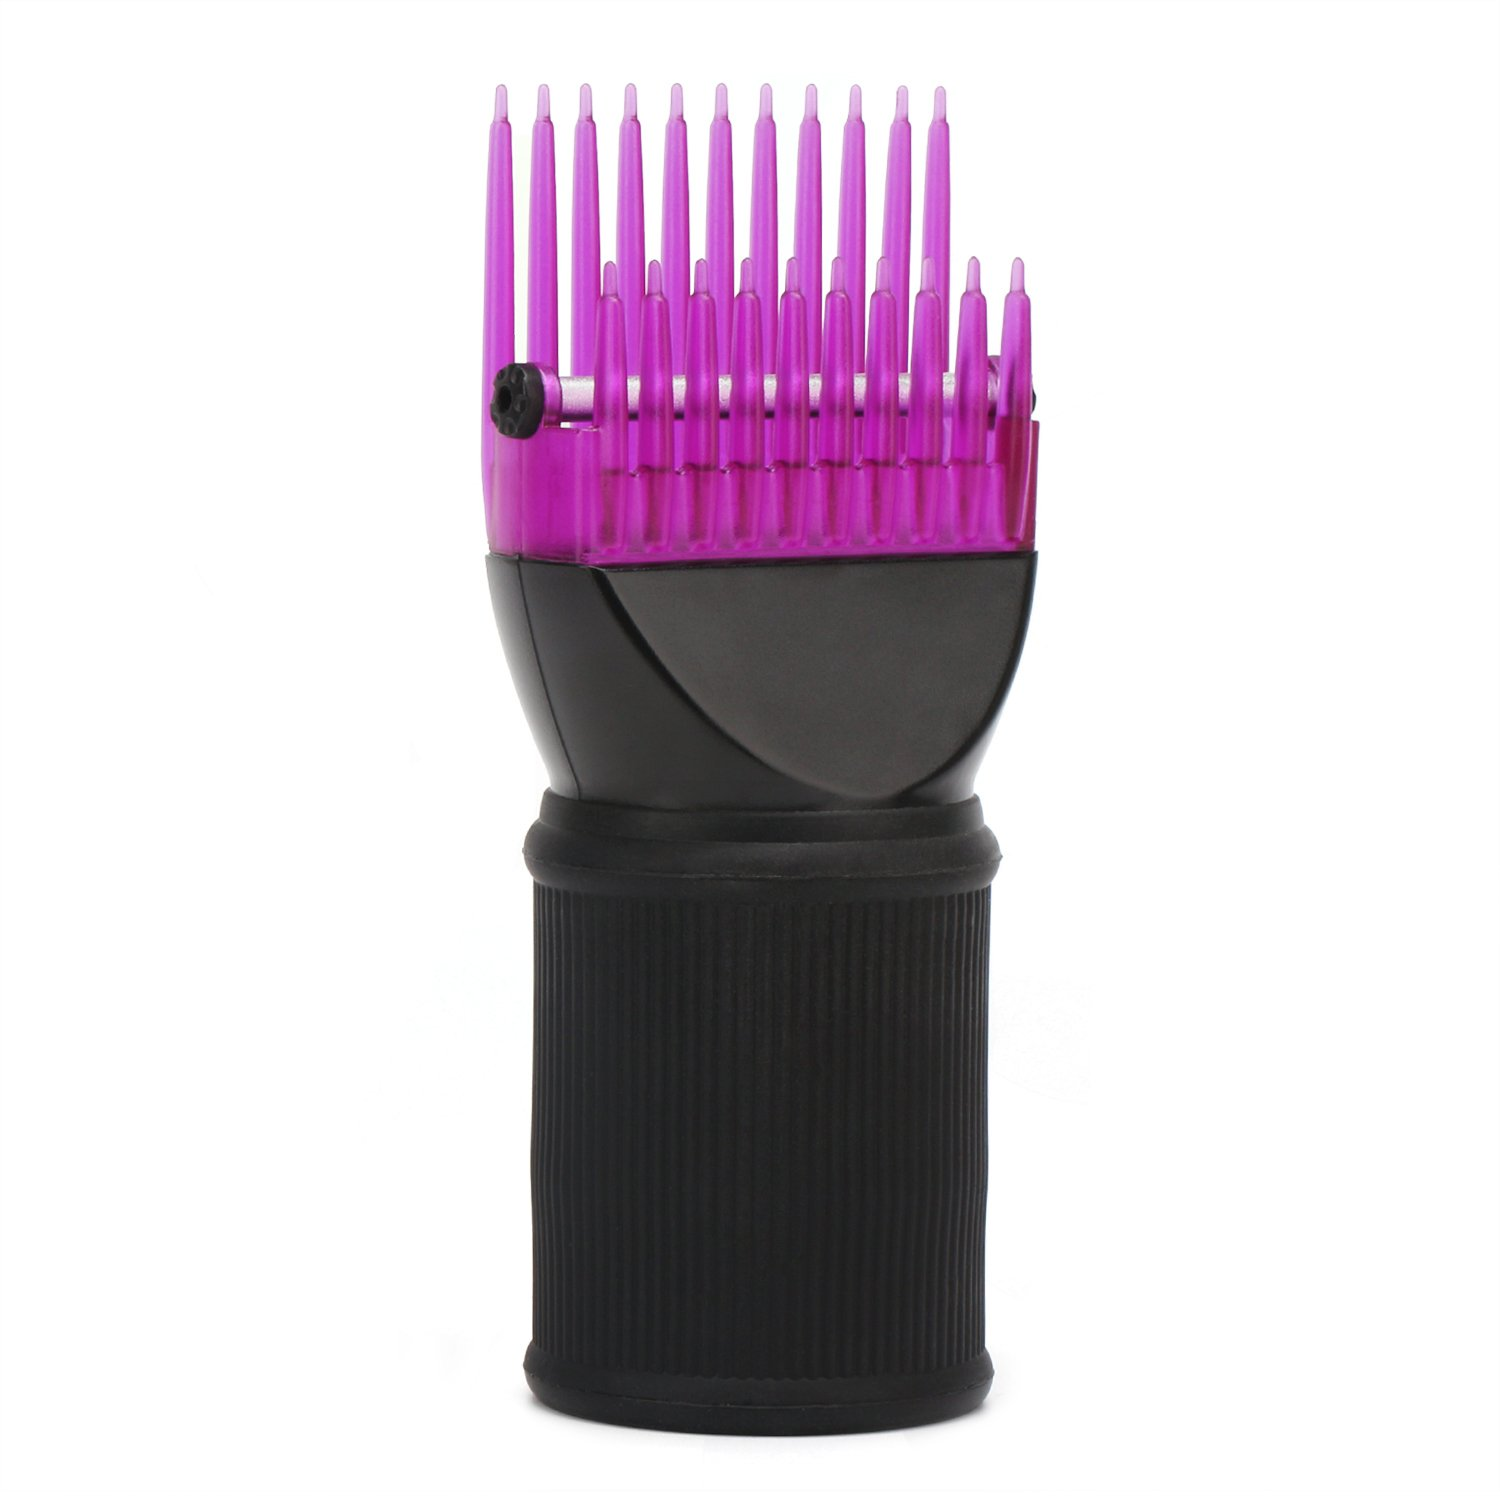 Hair Dryer Comb Attachment, Segbeauty Hair Blower Concentrator Nozzle Brush Attachments, Hairdressing Styling Salon Tool Pic for Fine, Wavy, Curly, Natural Hair